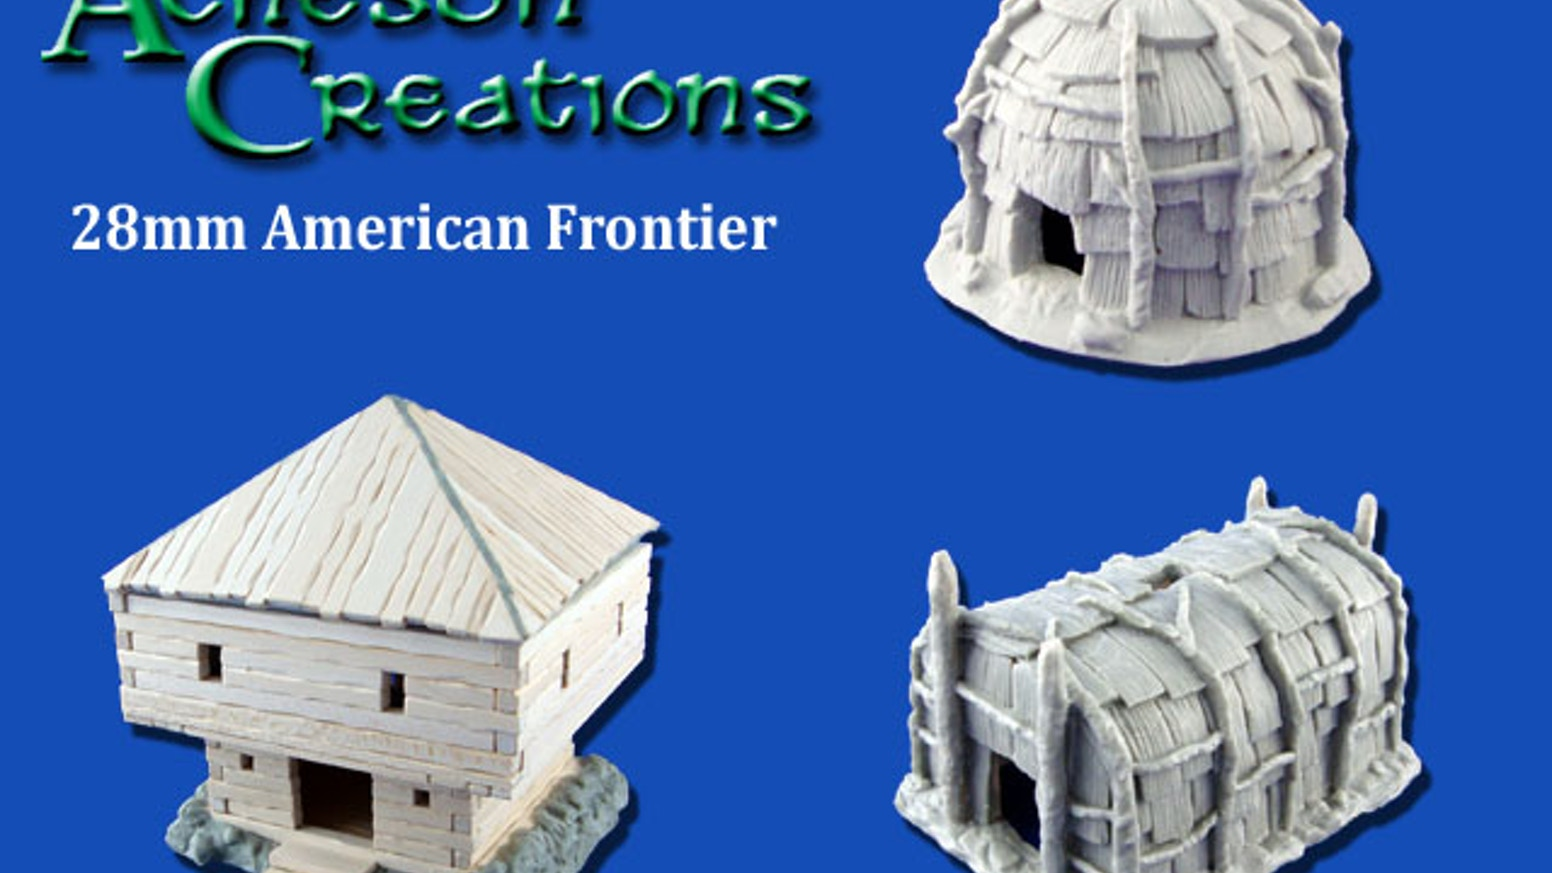 Wargaming Terrain for the American Frontier by Acheson ... on native american sites in nh, native american grass houses, native americans igloos, native american hogan, native american lodge, native american indian tribe diorama, native american yurok history, native american wooden houses, native american wickiup, native american teepee, native american homes, native american wattle and daub, native american bolo ties for men, native american round houses, native american paper artwork, native american adobe houses, native american wigwams, native american indian shelters, native american yurt, native american houses school project,